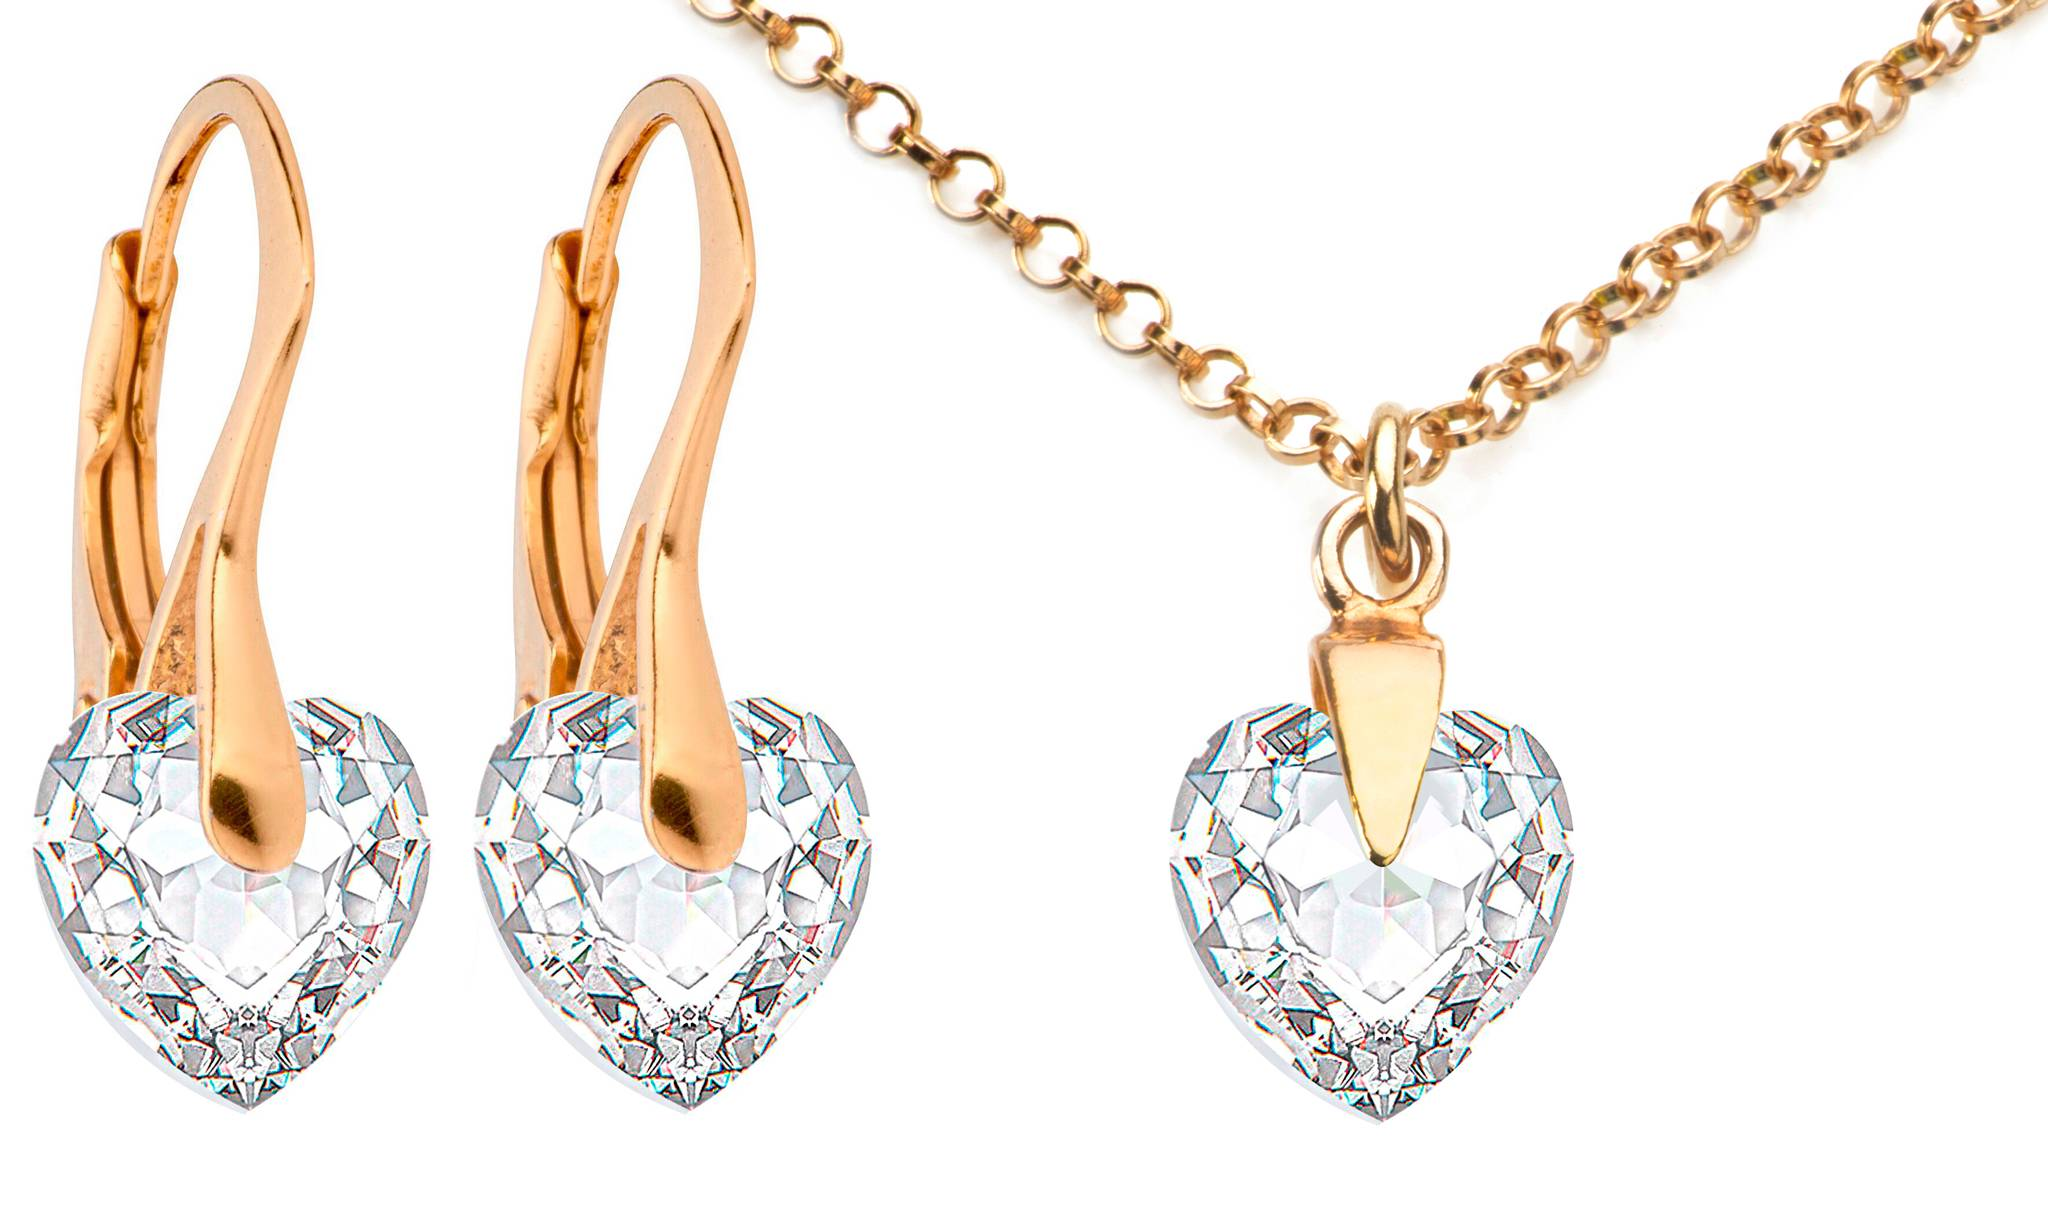 Ah! Jewellery® Ah! Jewellery® Ah! Jewellery Necklace and Earrings Set with Crystals from Swarovski®: Crystal Heart